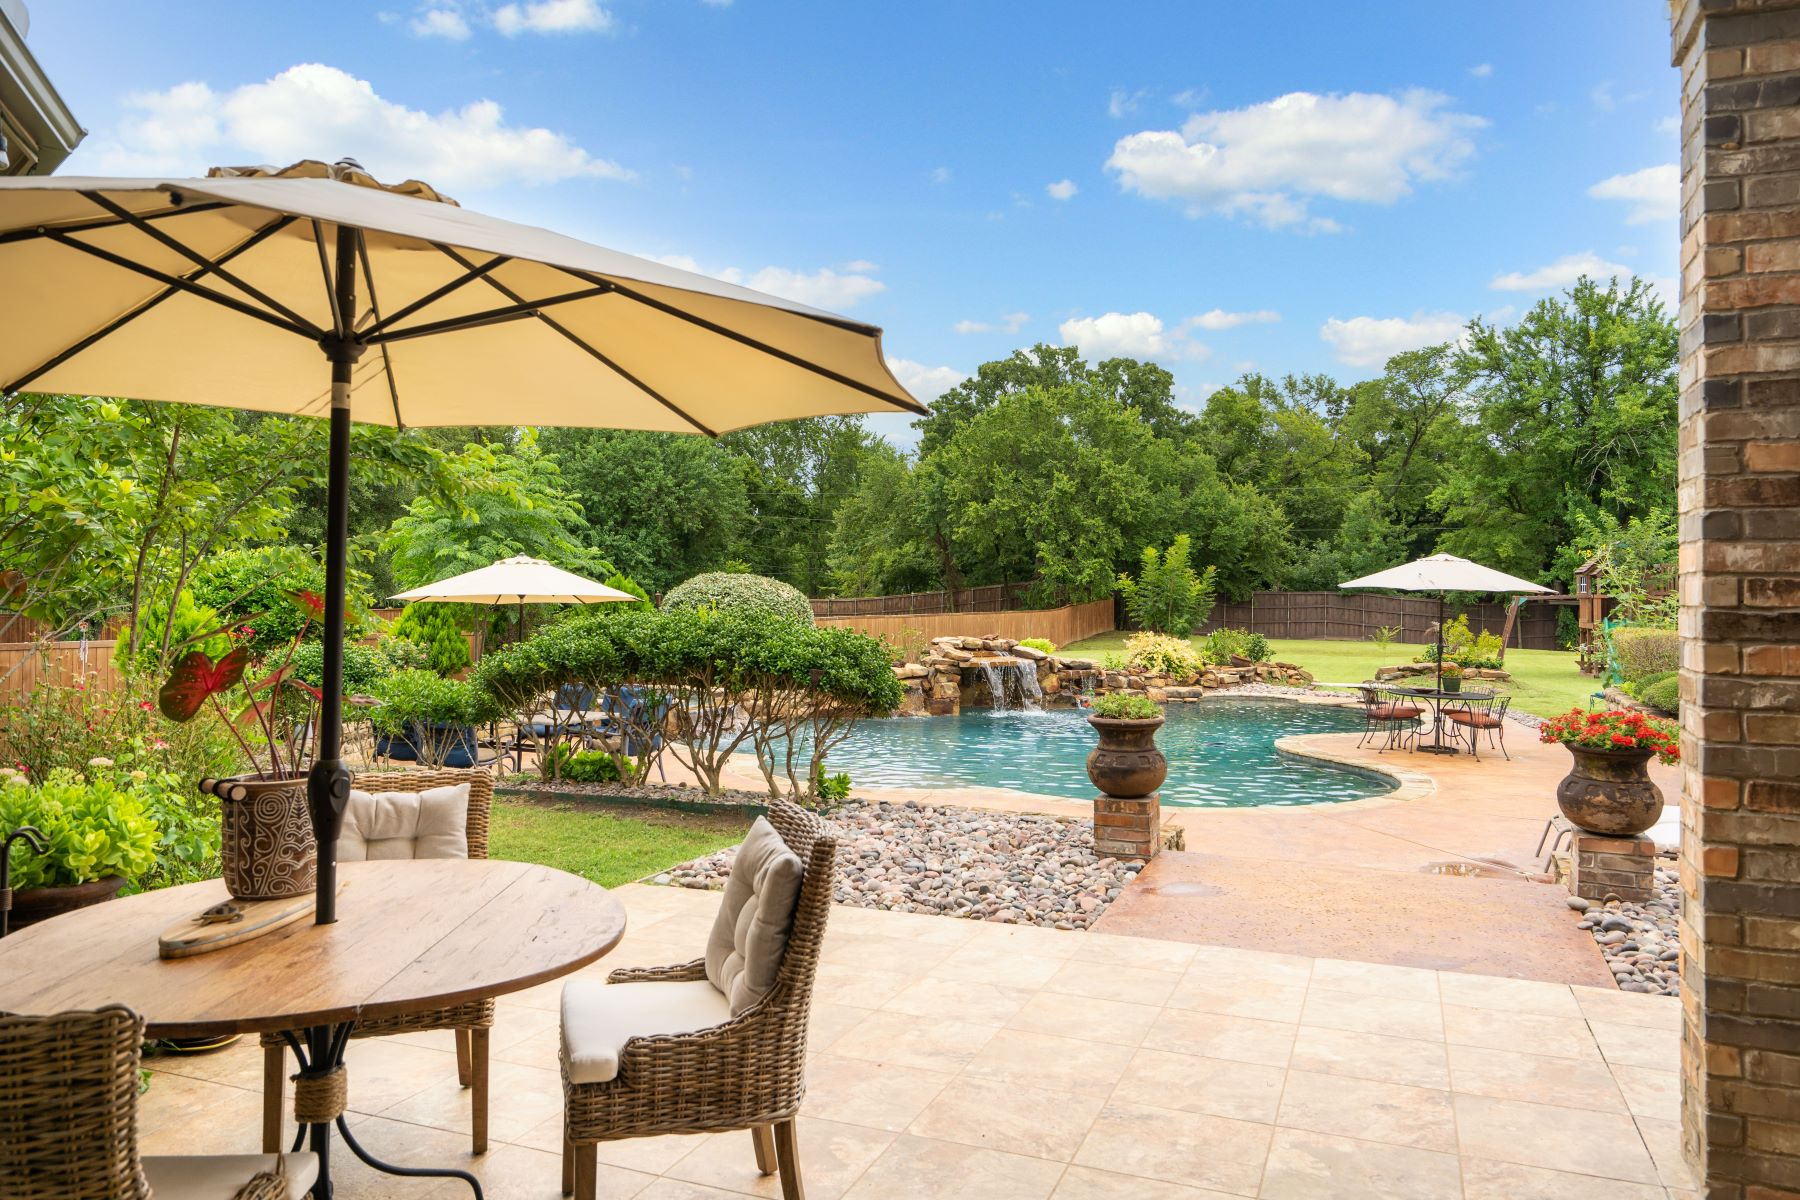 Single Family Homes for Sale at Luxurious Custom Southlake Home 1109 Bay Meadows Drive Southlake, Texas 76092 United States